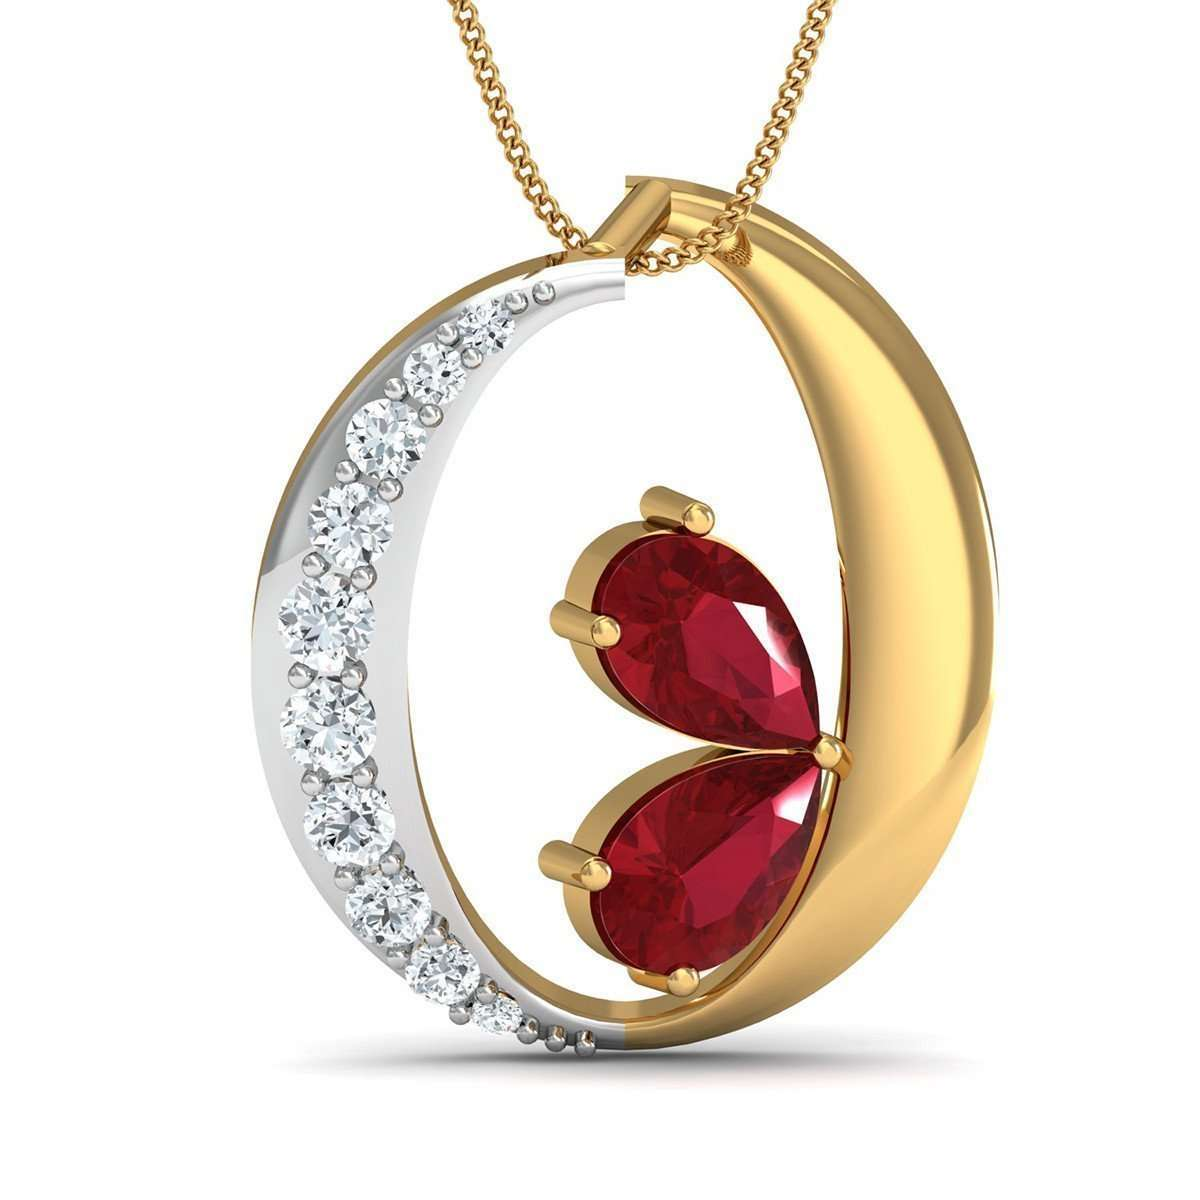 14kt Yellow Gold Earrings With Pear Cut Rubies and Round Shape Diamonds-Diamoire Jewels-JewelStreet EU